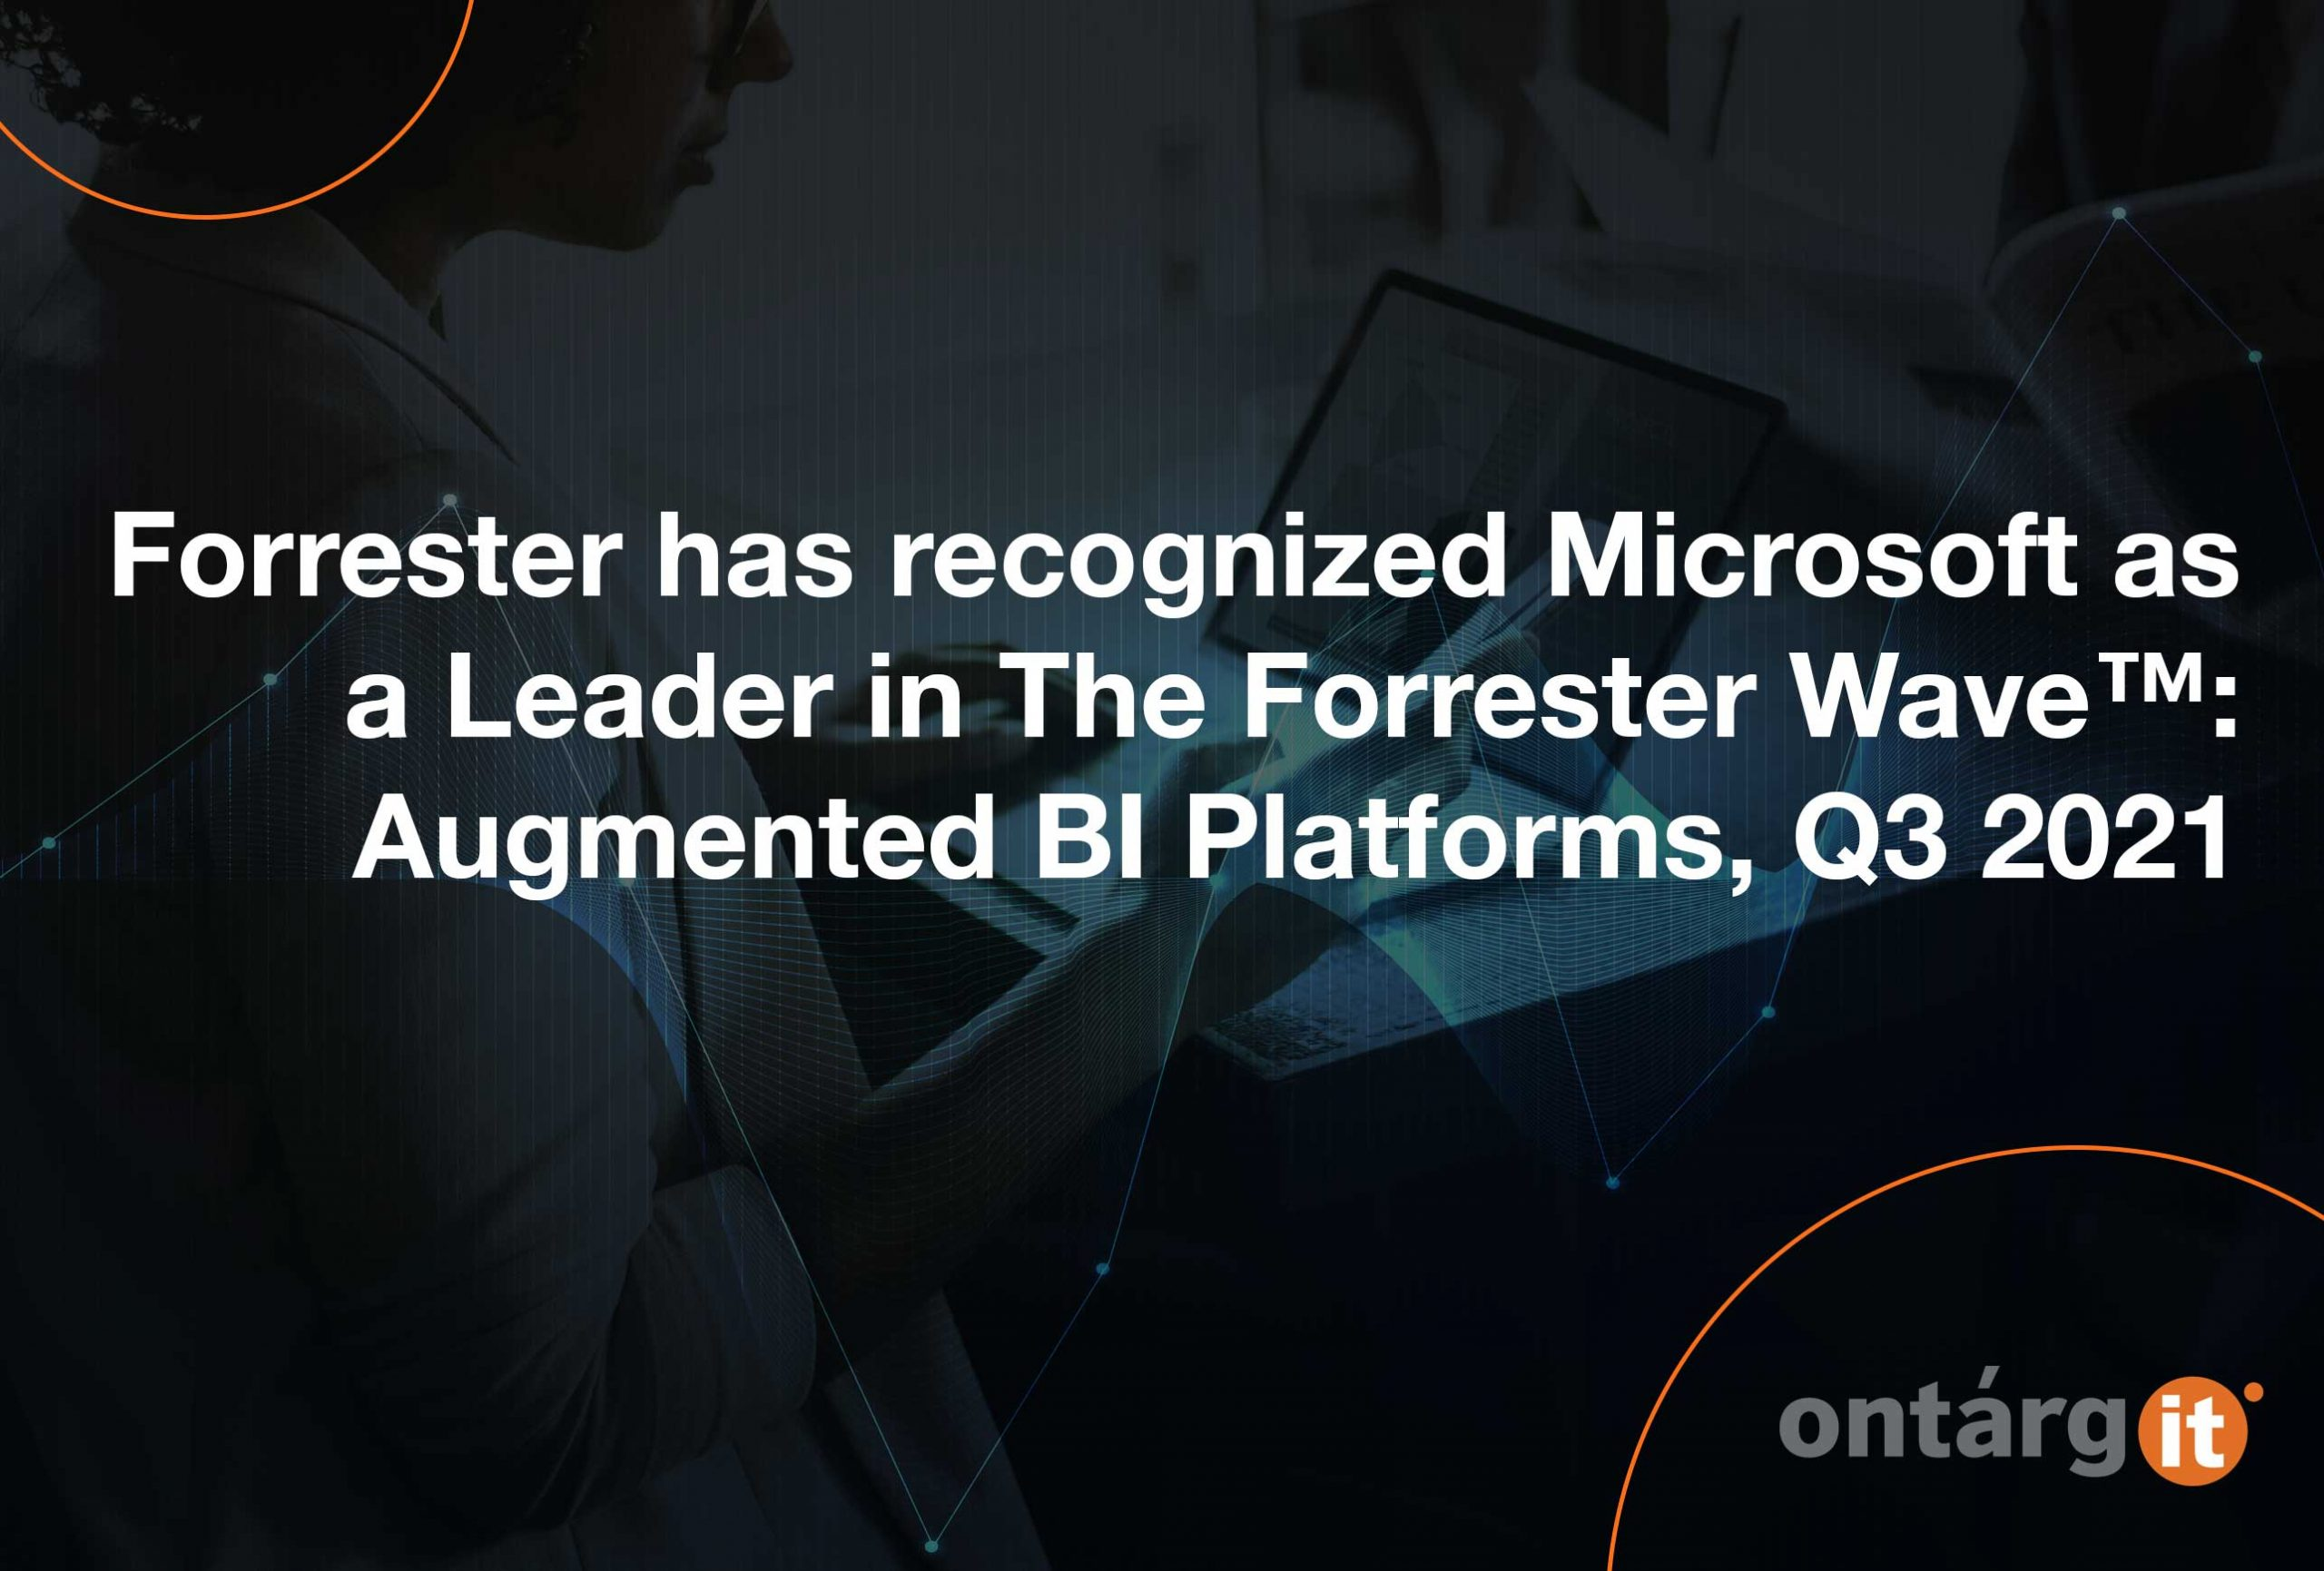 Forrester-has-recognized-Microsoft-as-a-Leader-in-The-Forrester-Wave-Augmented-BI-Platforms,-Q3-2021